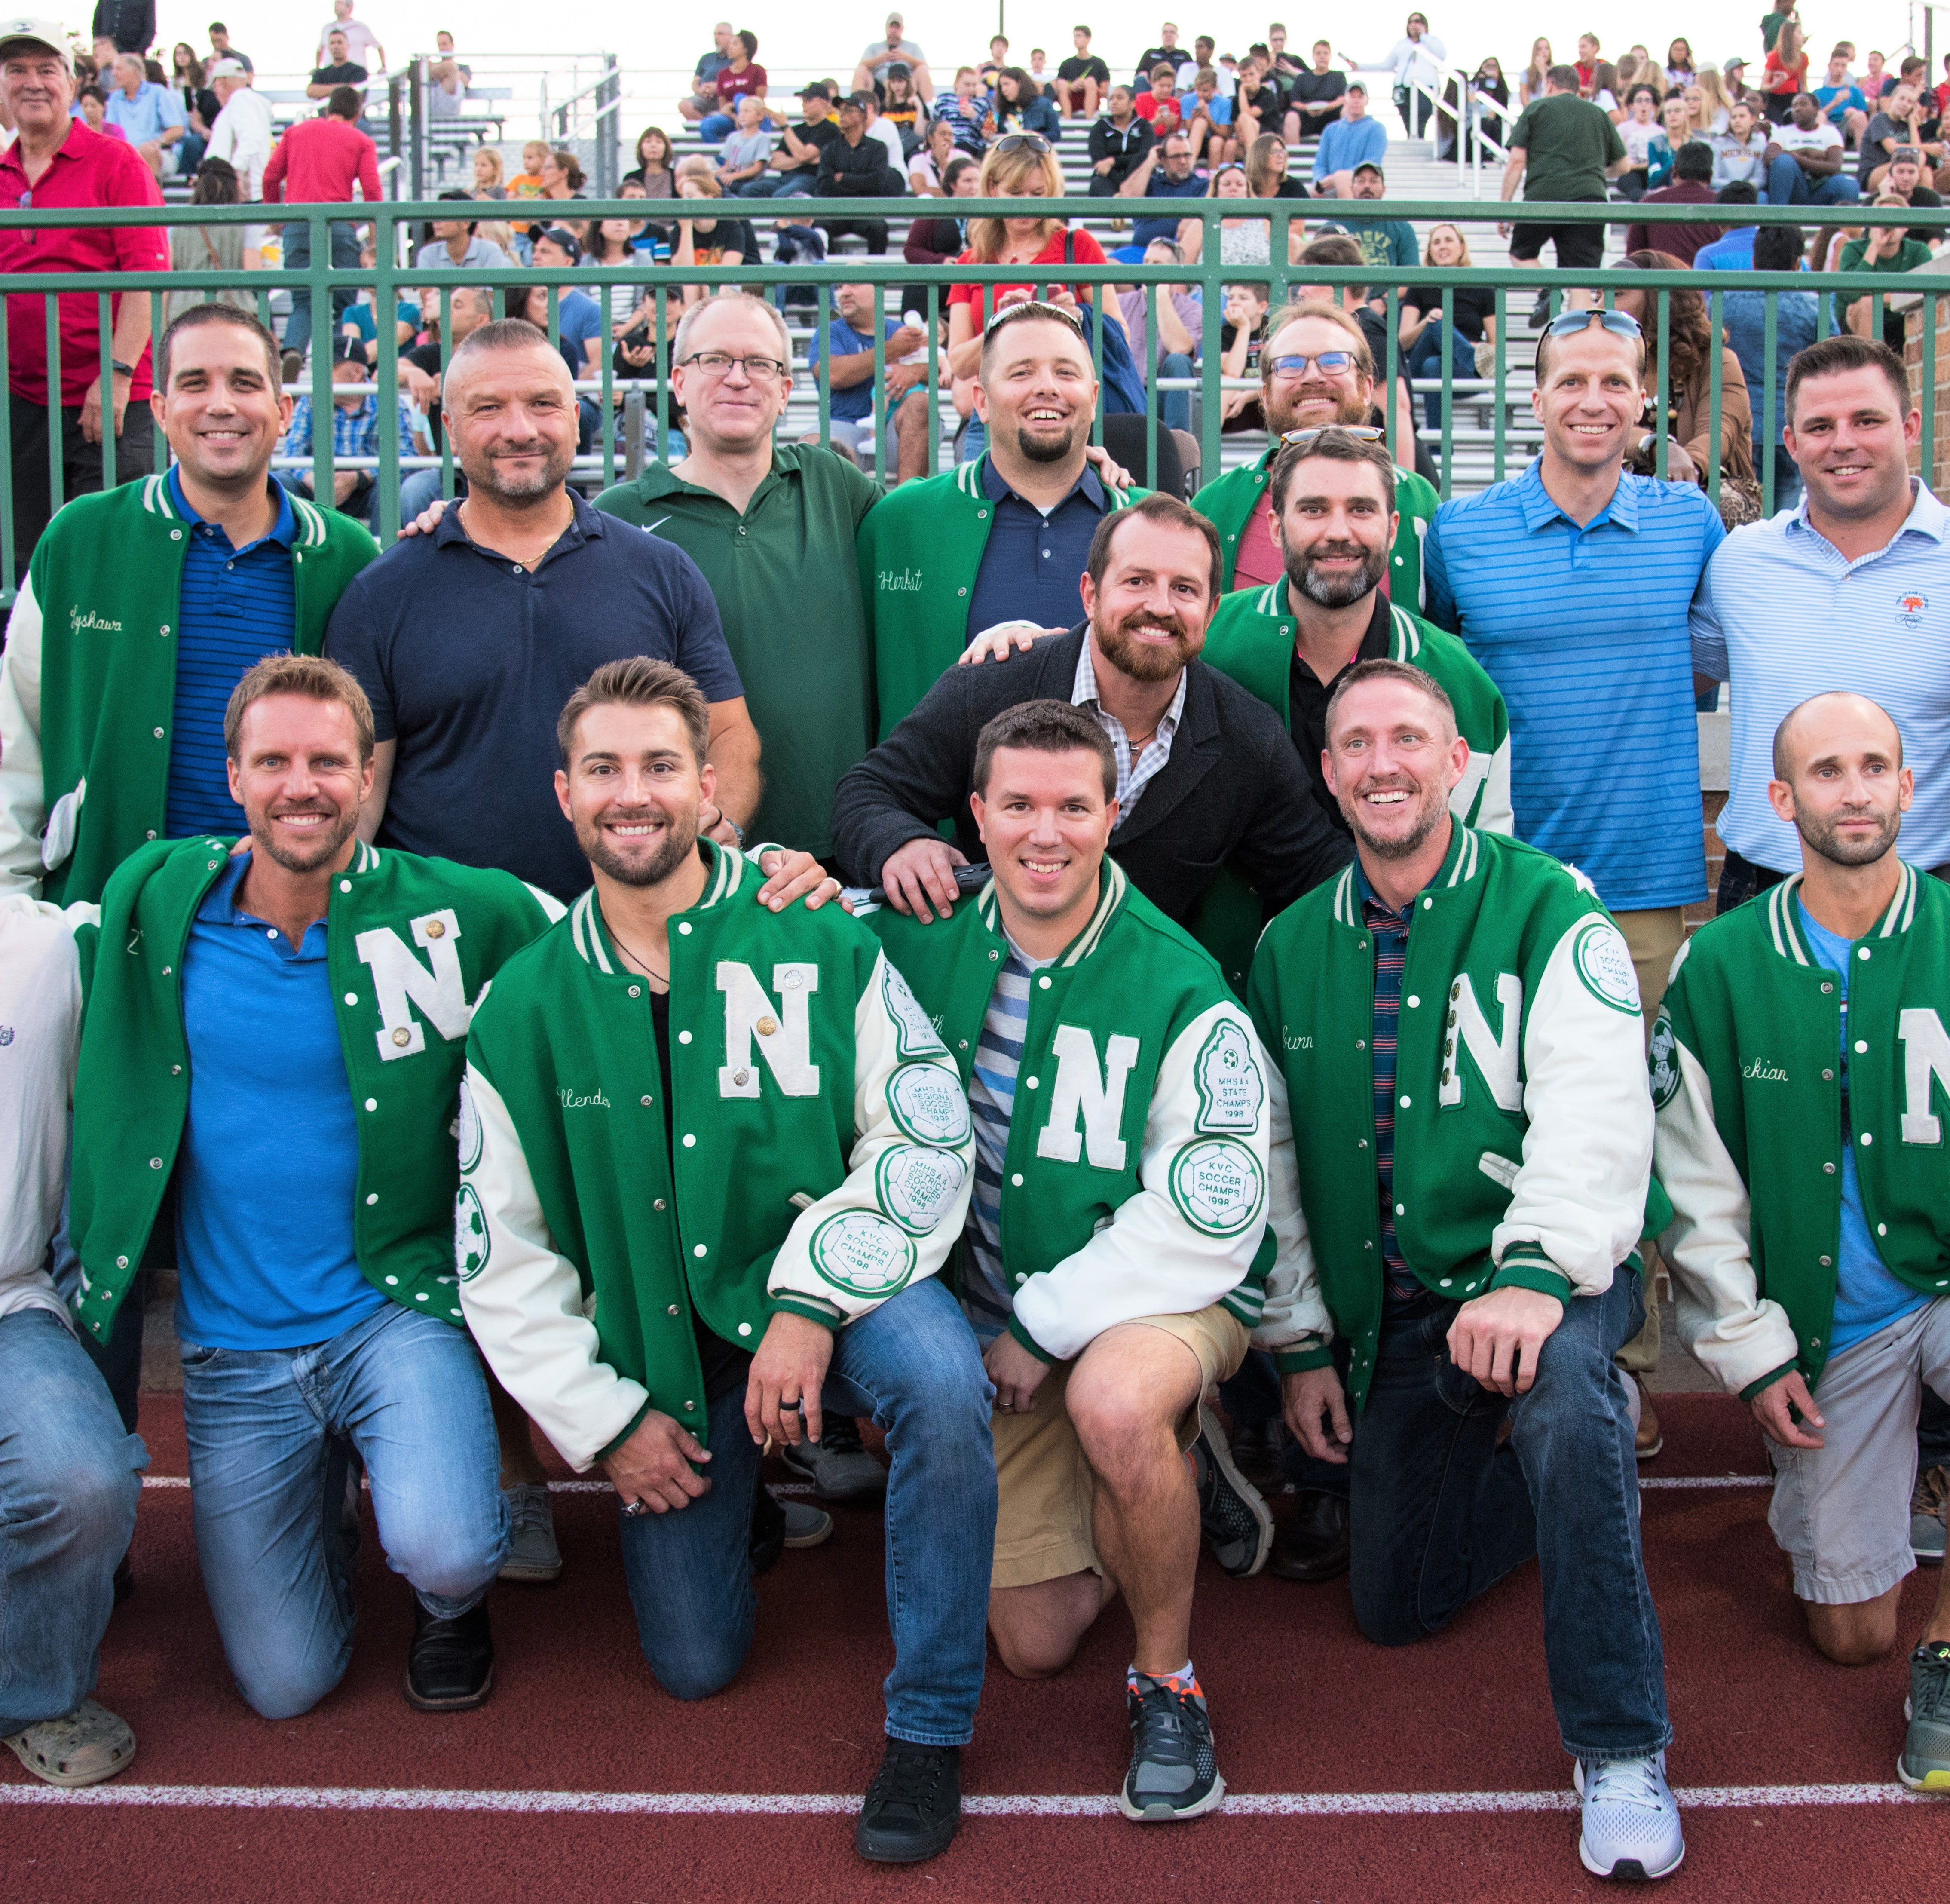 1998 Division 1 champion Novi boys soccer team takes another bow